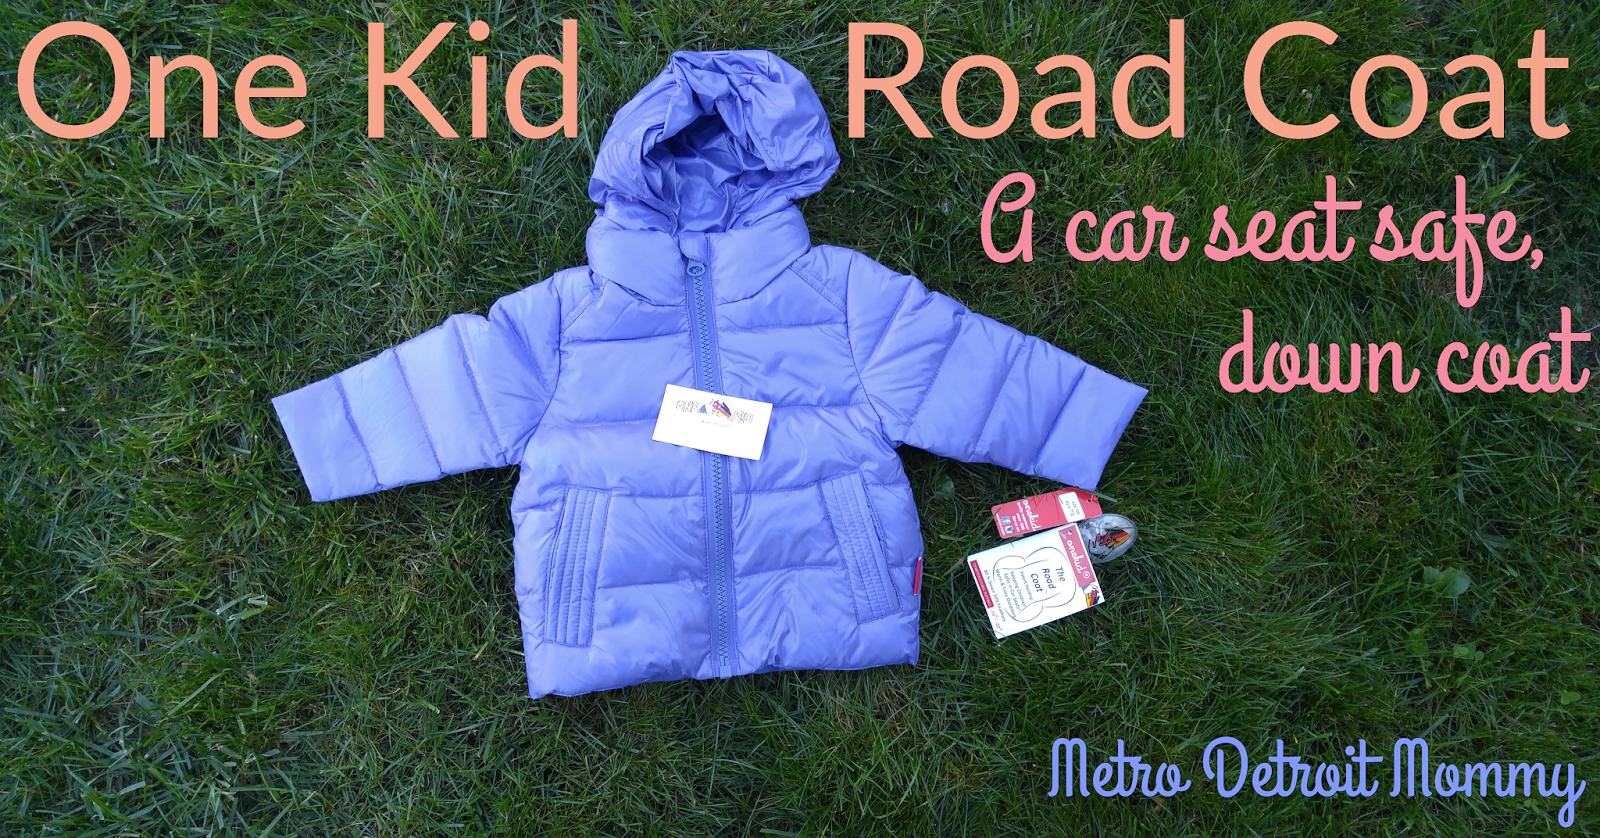 Metro detroit mommy road coat a car seat safe down coat it is getting cold out we are preparing for winter and cooler temperatures mean more clothing its time to bundle your kids in to get in the car and now 1betcityfo Gallery